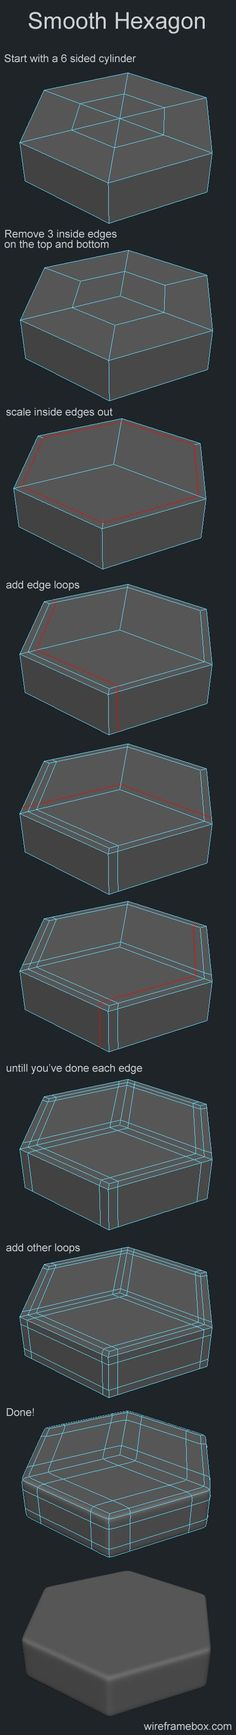 Smooth Hexagon Modeling